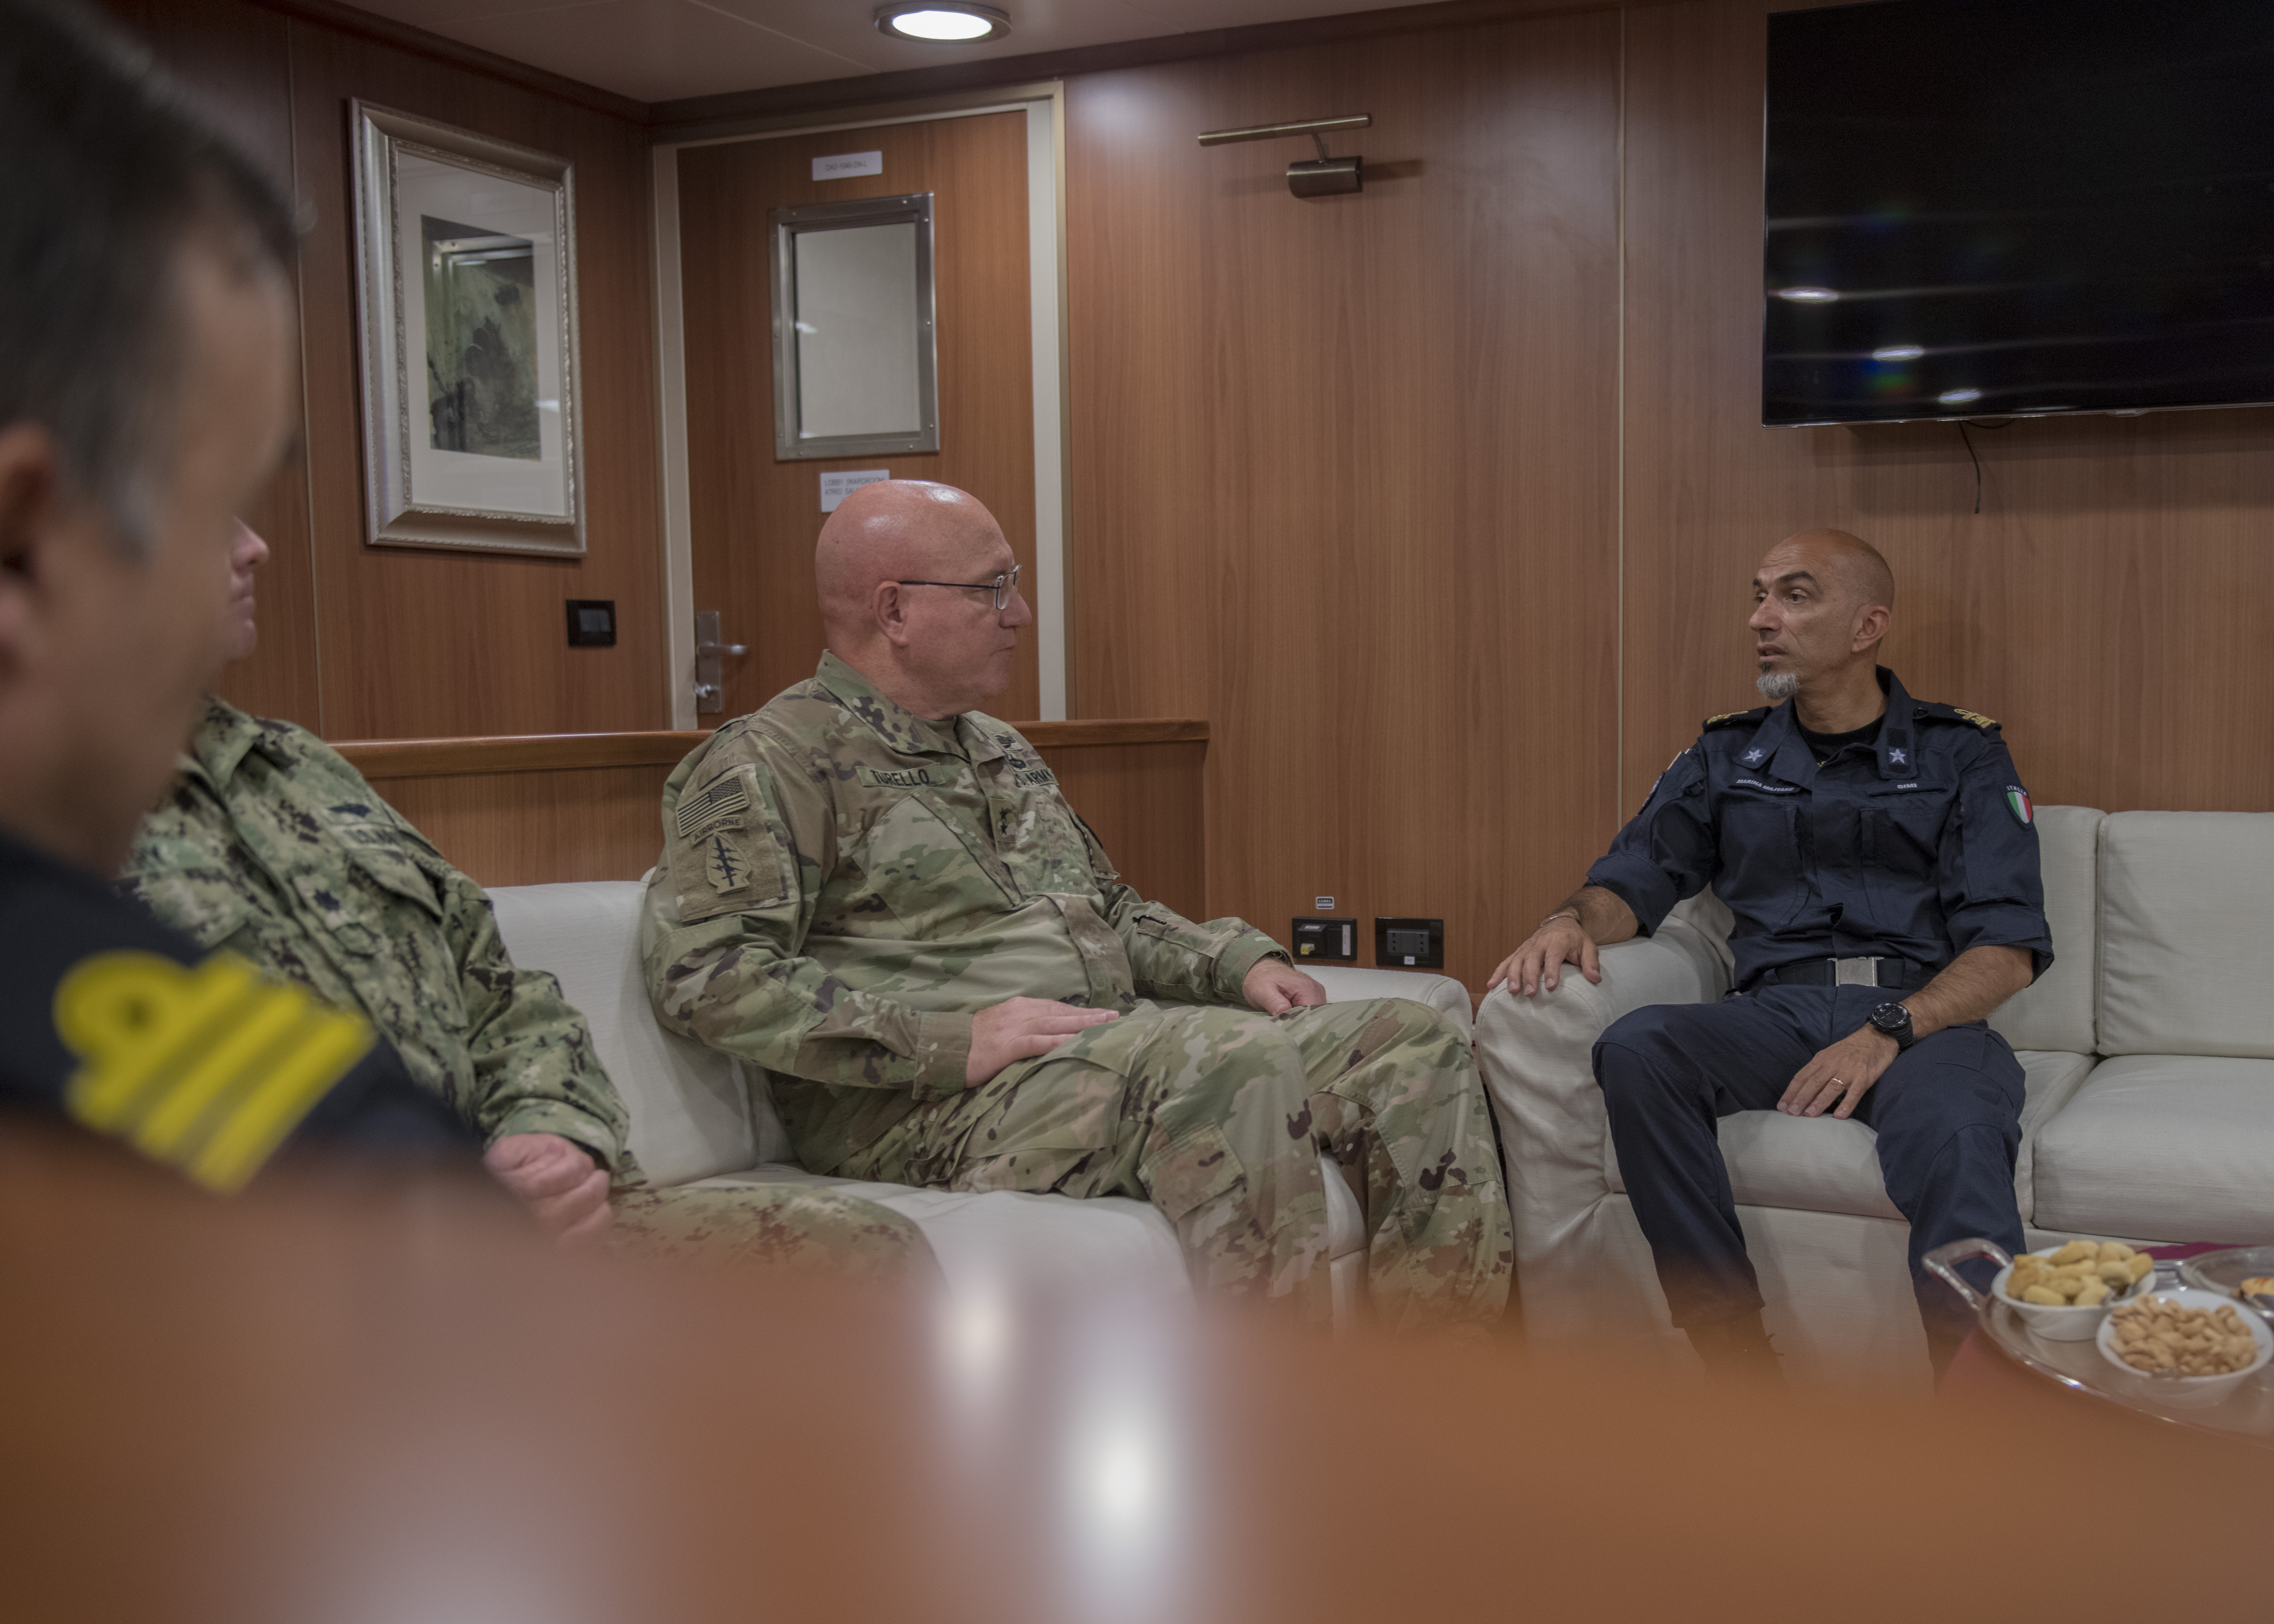 U.S. Army Maj. Gen. Michael D. Turello, commanding general of Combined Joint Task Force-Horn of Africa, meets with Italian Navy Rear Admiral Armando Paolo Simi, force commander of Operation Atalanta, outside Djibouti City, Djibouti, Oct. 21, 2019. Operation Atalanta is a counter-piracy naval military operation off the Horn of Africa. (U.S. Air Force Photo by Senior Airman Codie Trimble)